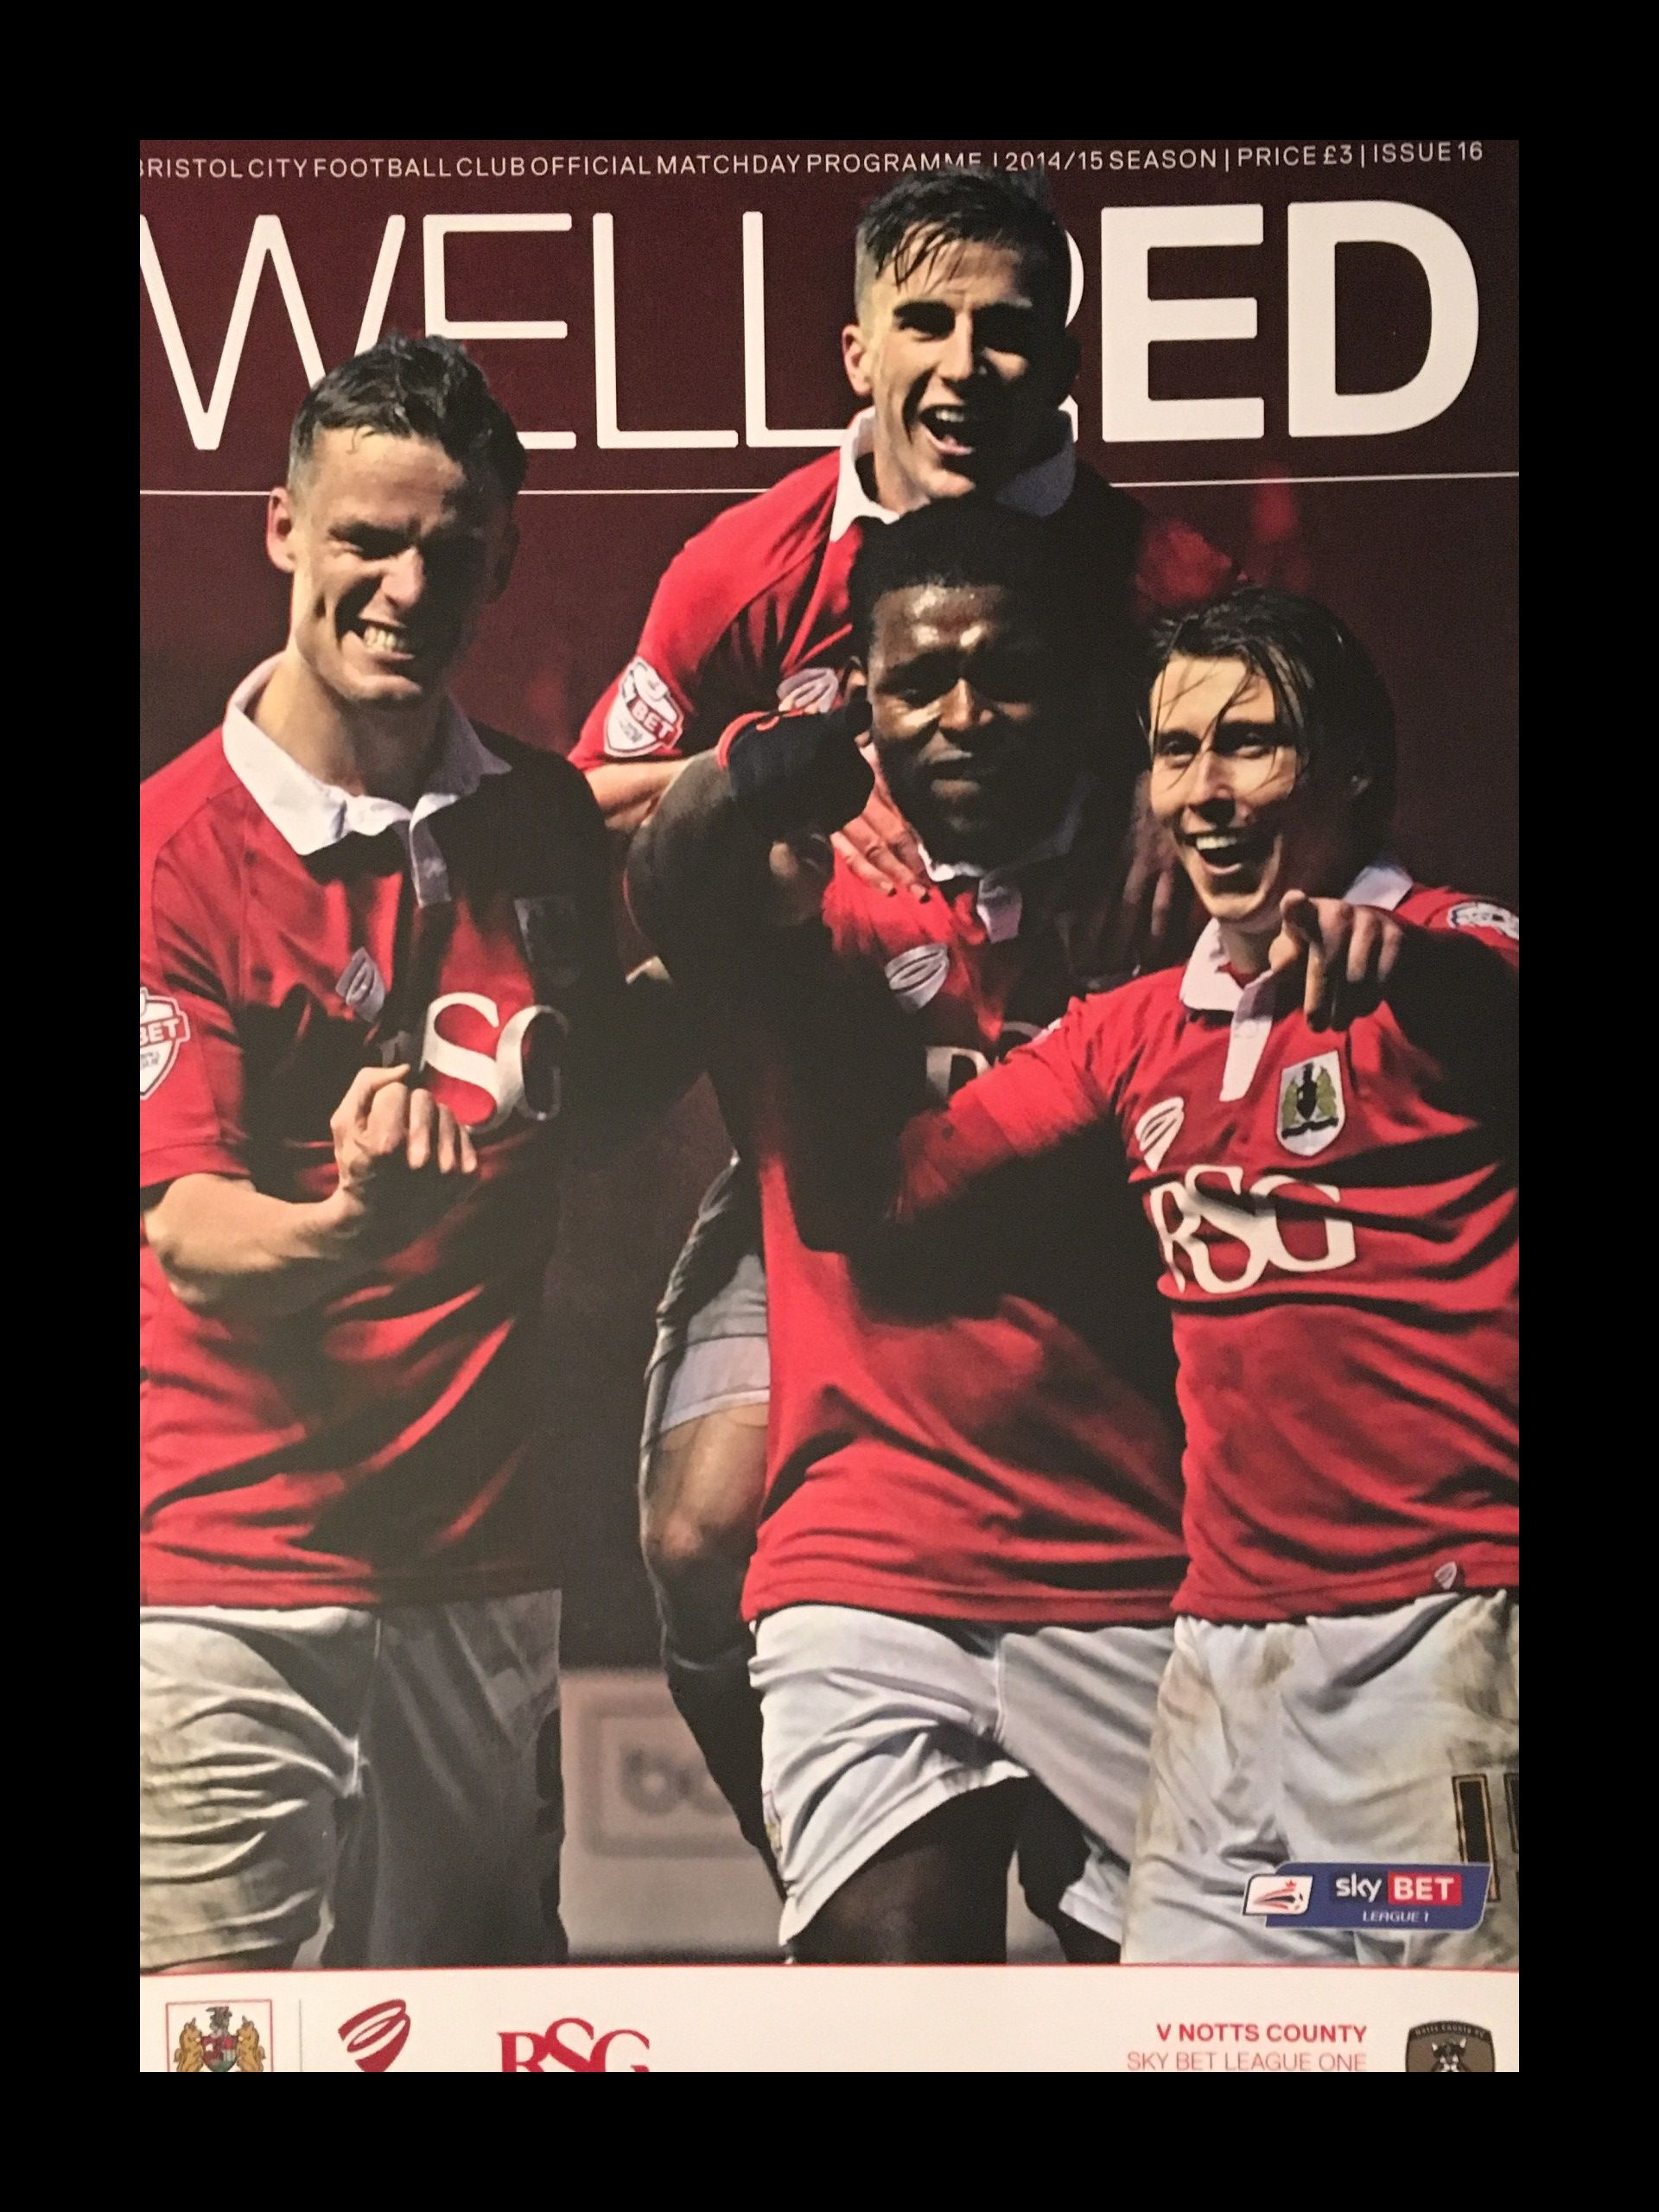 Bristol City v Notts County 10-01-2015 Programme